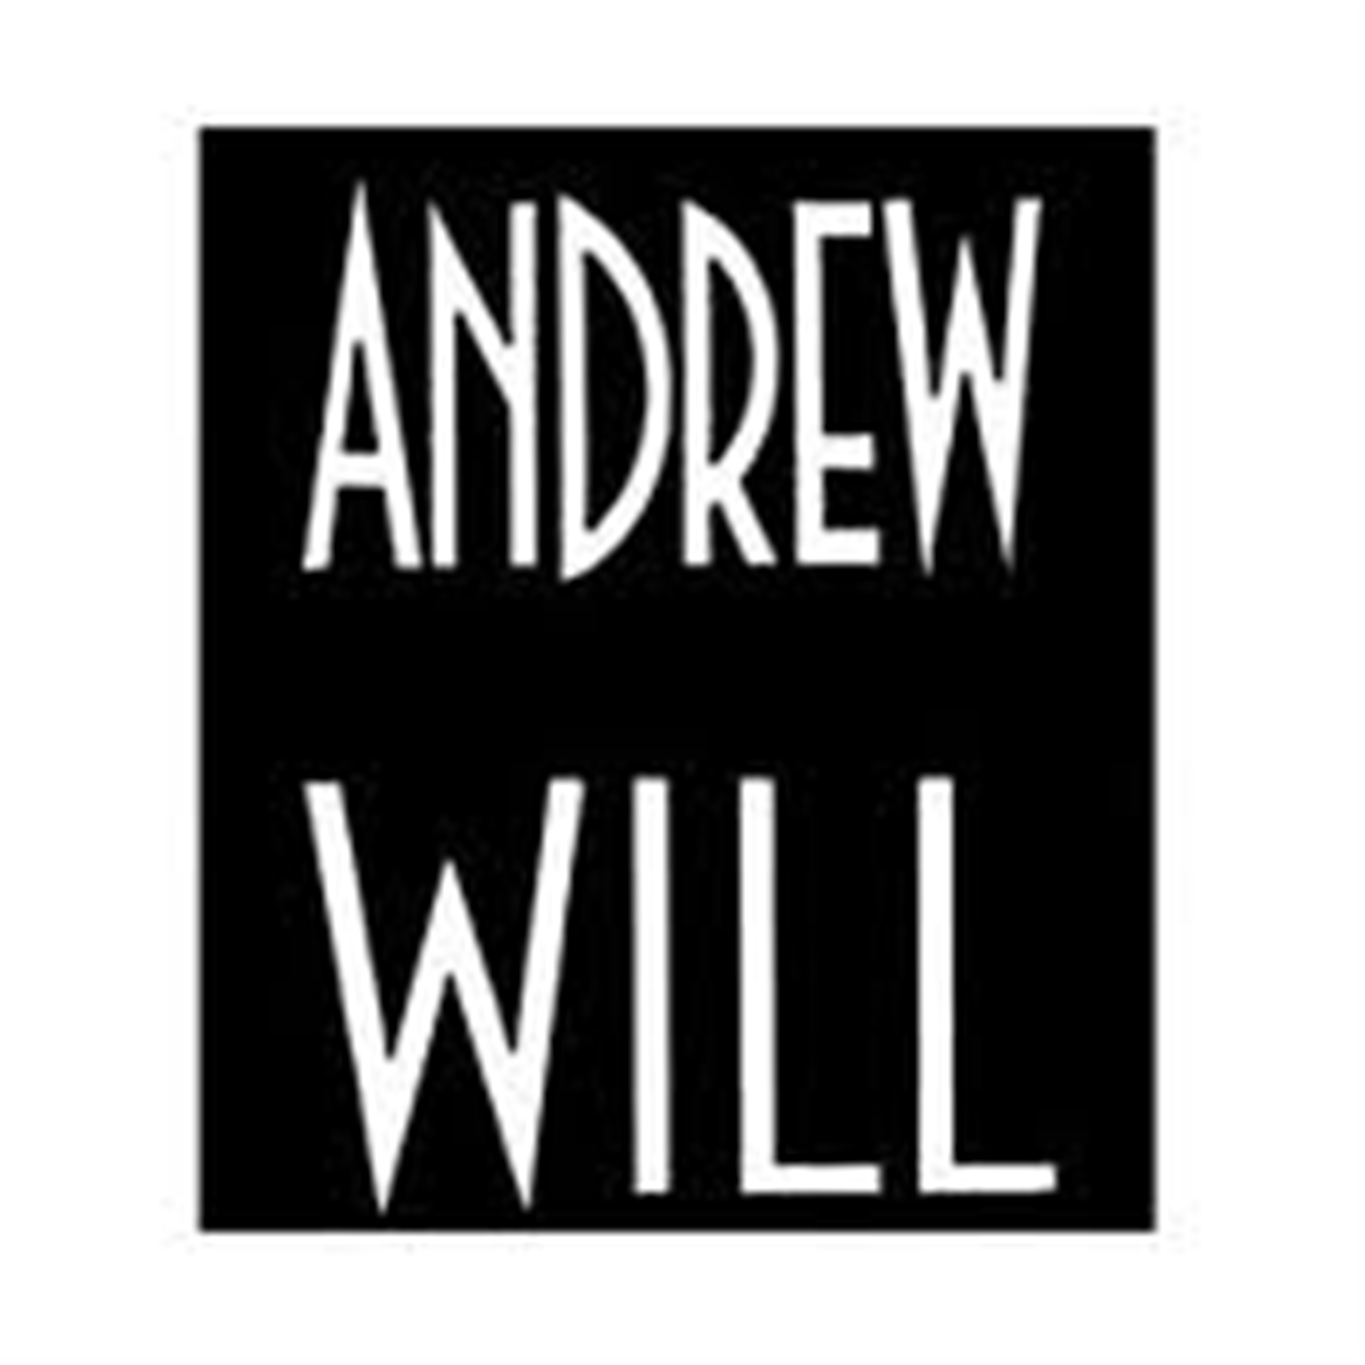 ANDREW WILL CHAMPOUX